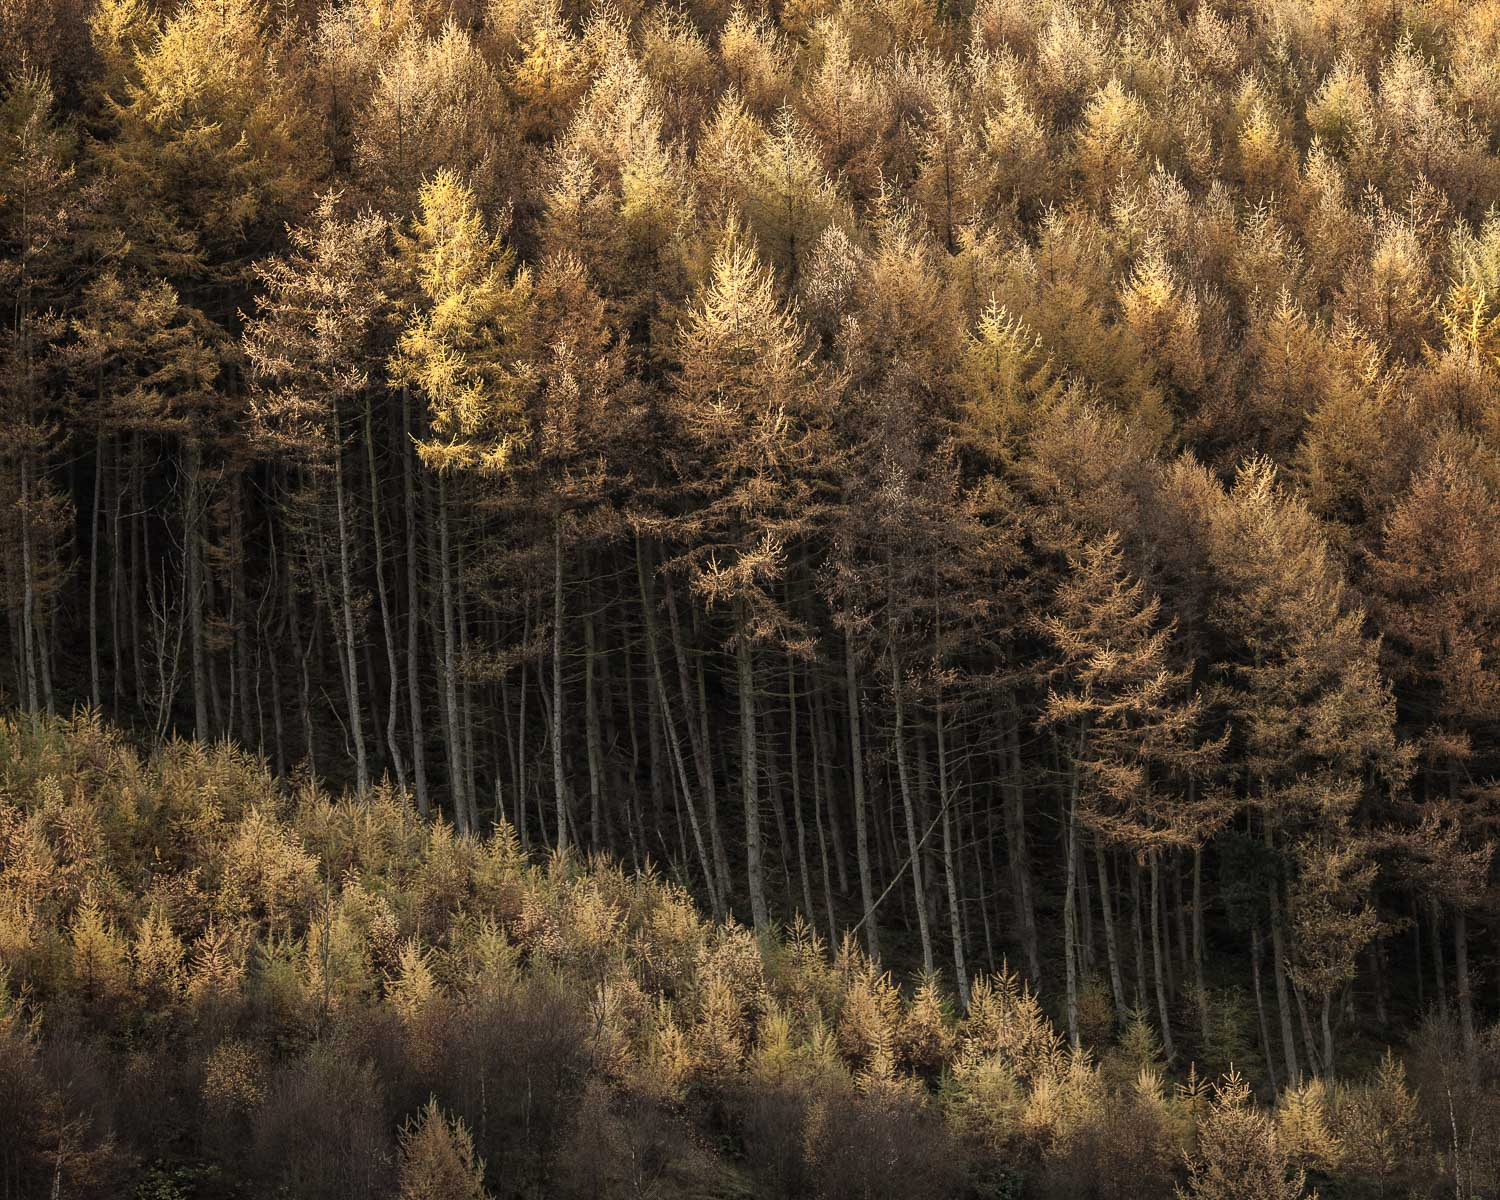 Trees of Gold, Woodlands Valley, Derbyshire [EW14]